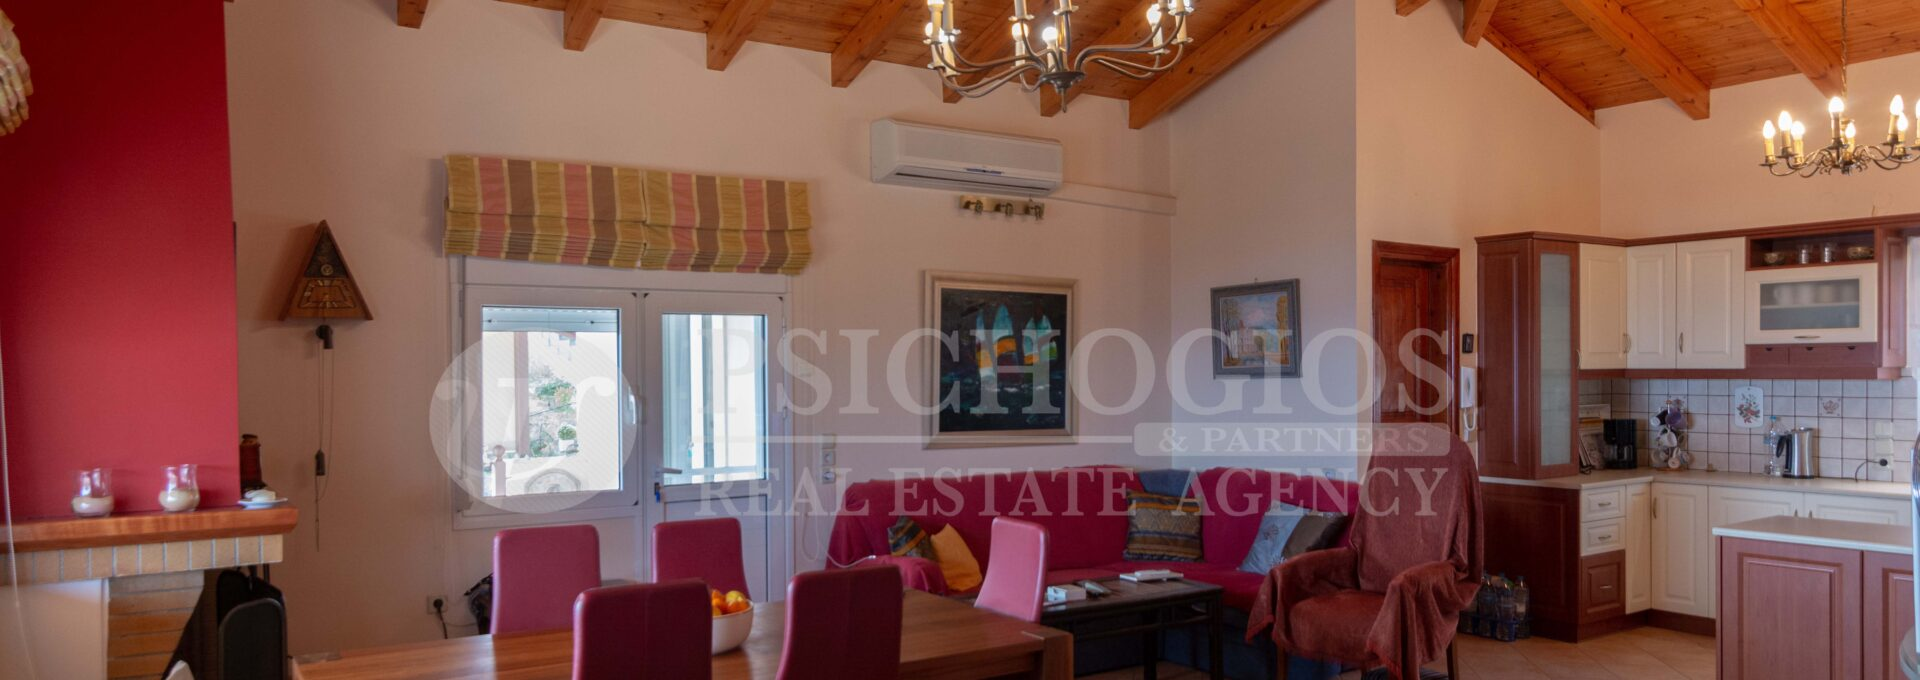 for_sale_house_107_square_meters_3_bedrooms_sea_view_ermioni_greece 1 1 (20)